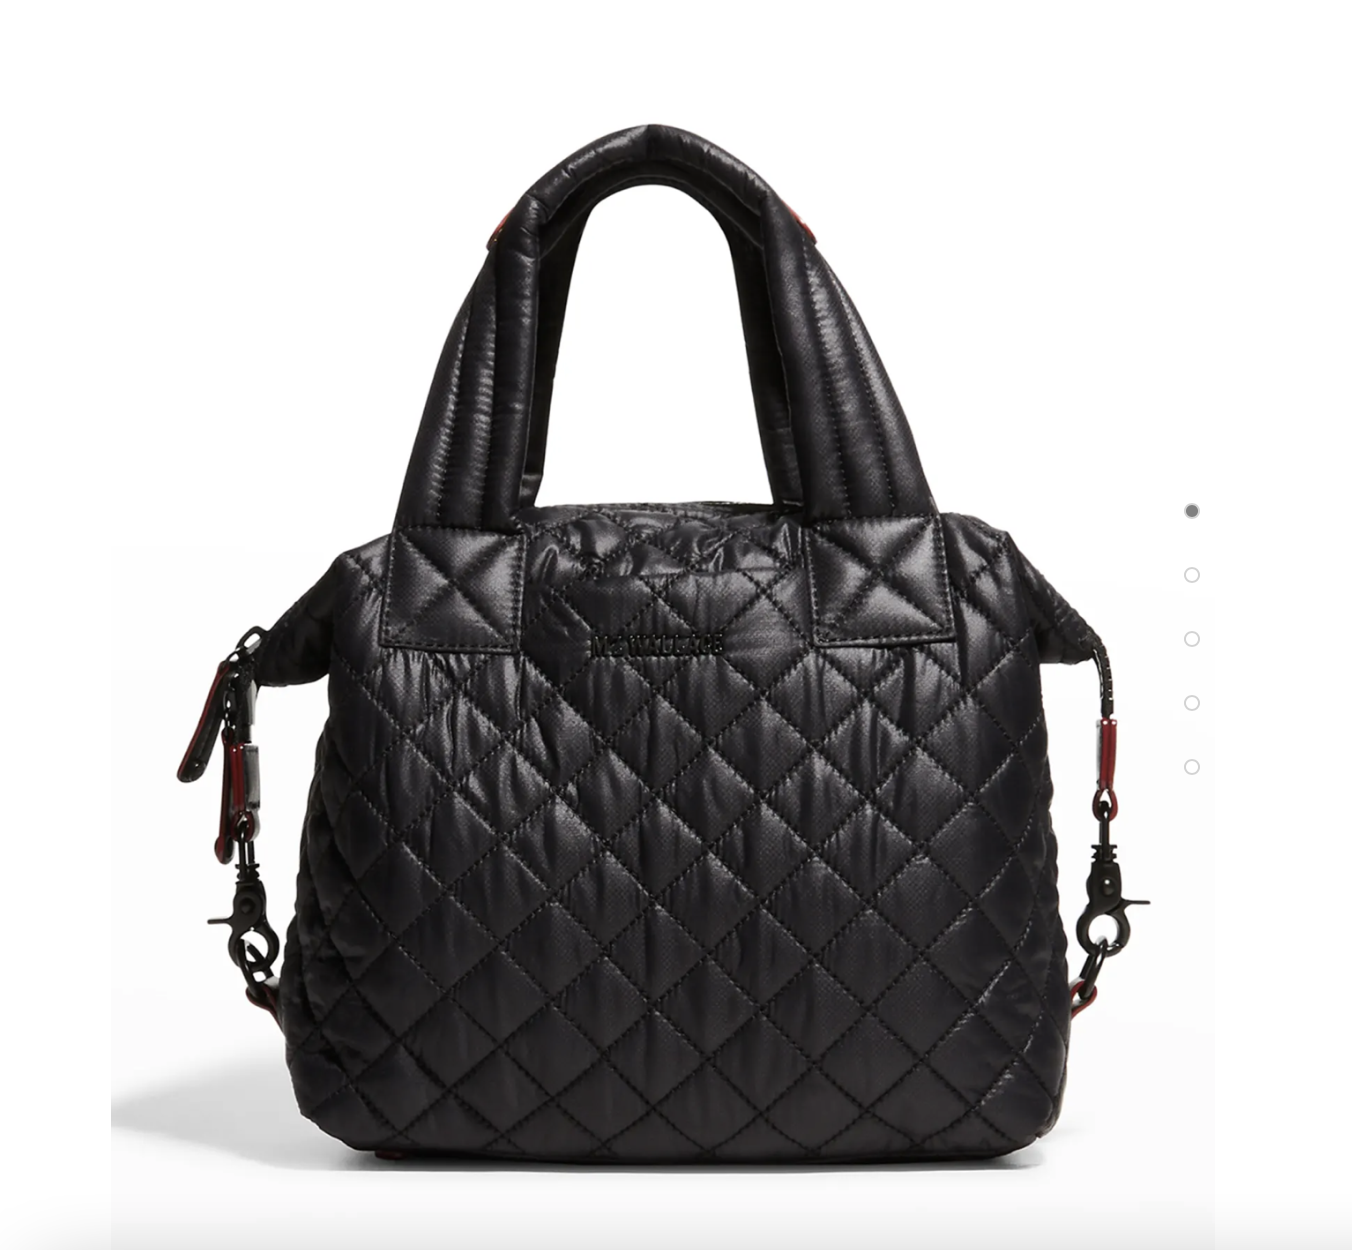 Neiman Marcus: Up to 0 off on Women's shoes and handbags